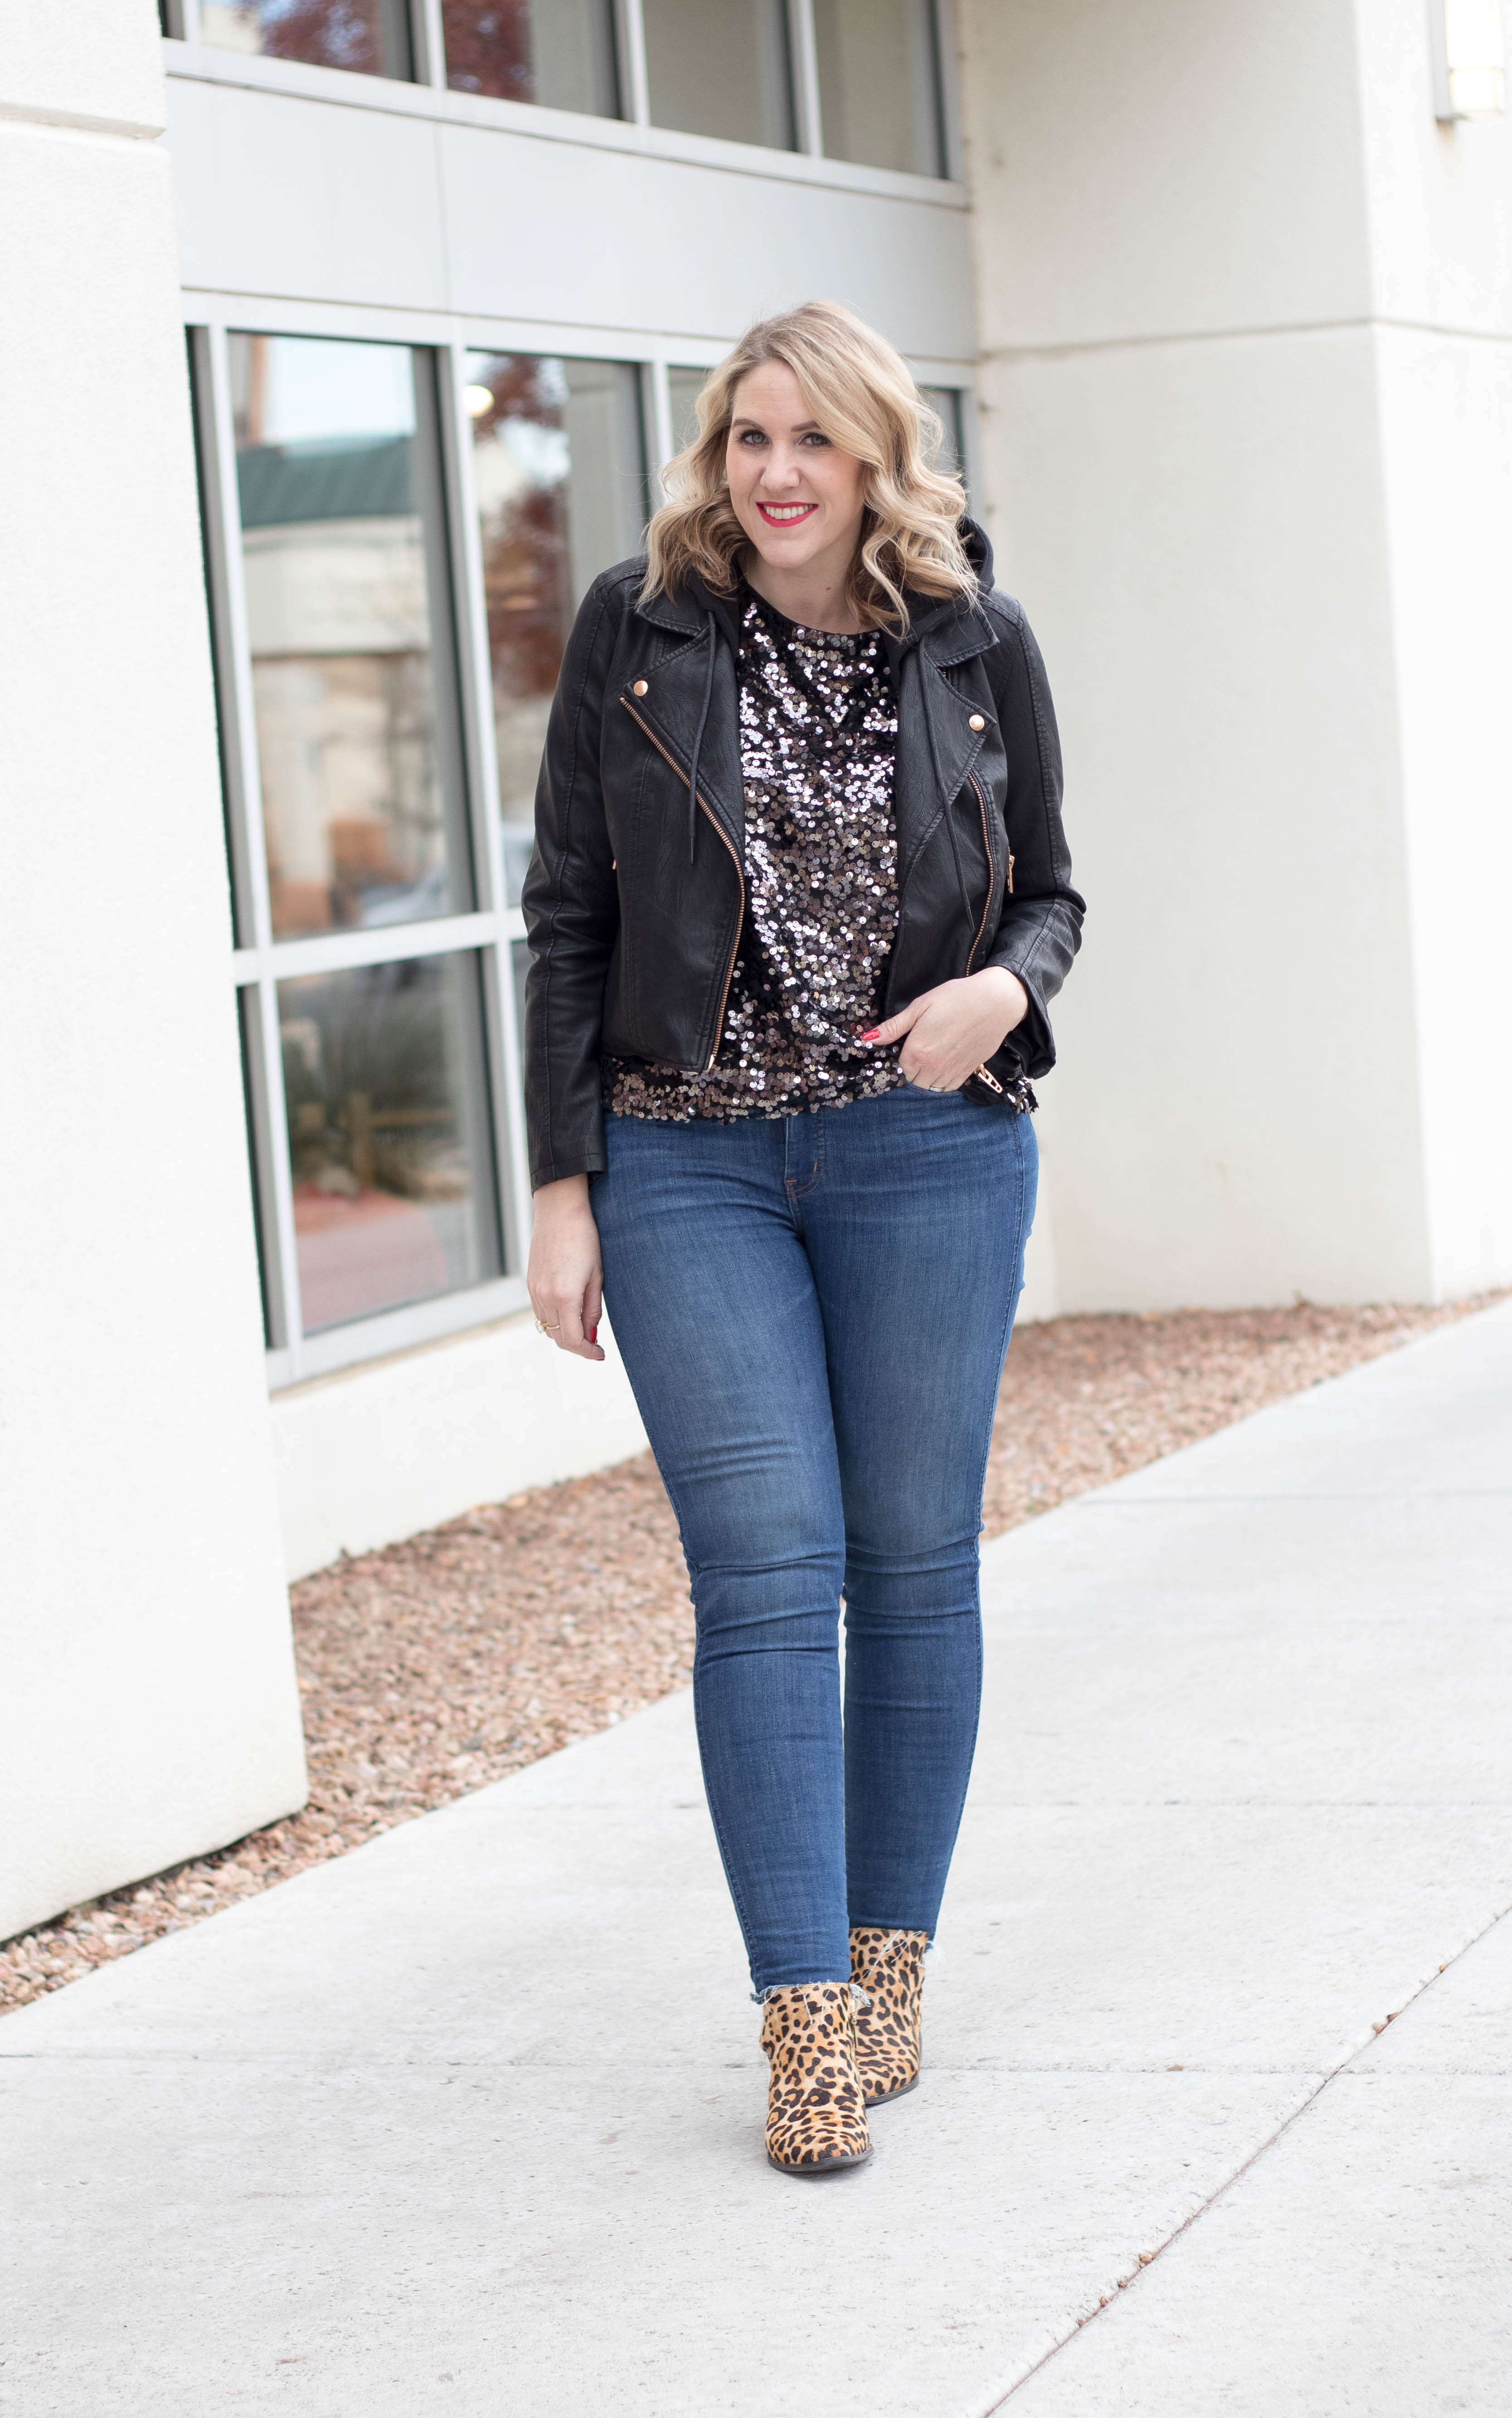 casual holiday style sequin top #theweeklystyleedit #holidaystyle #winterfashion